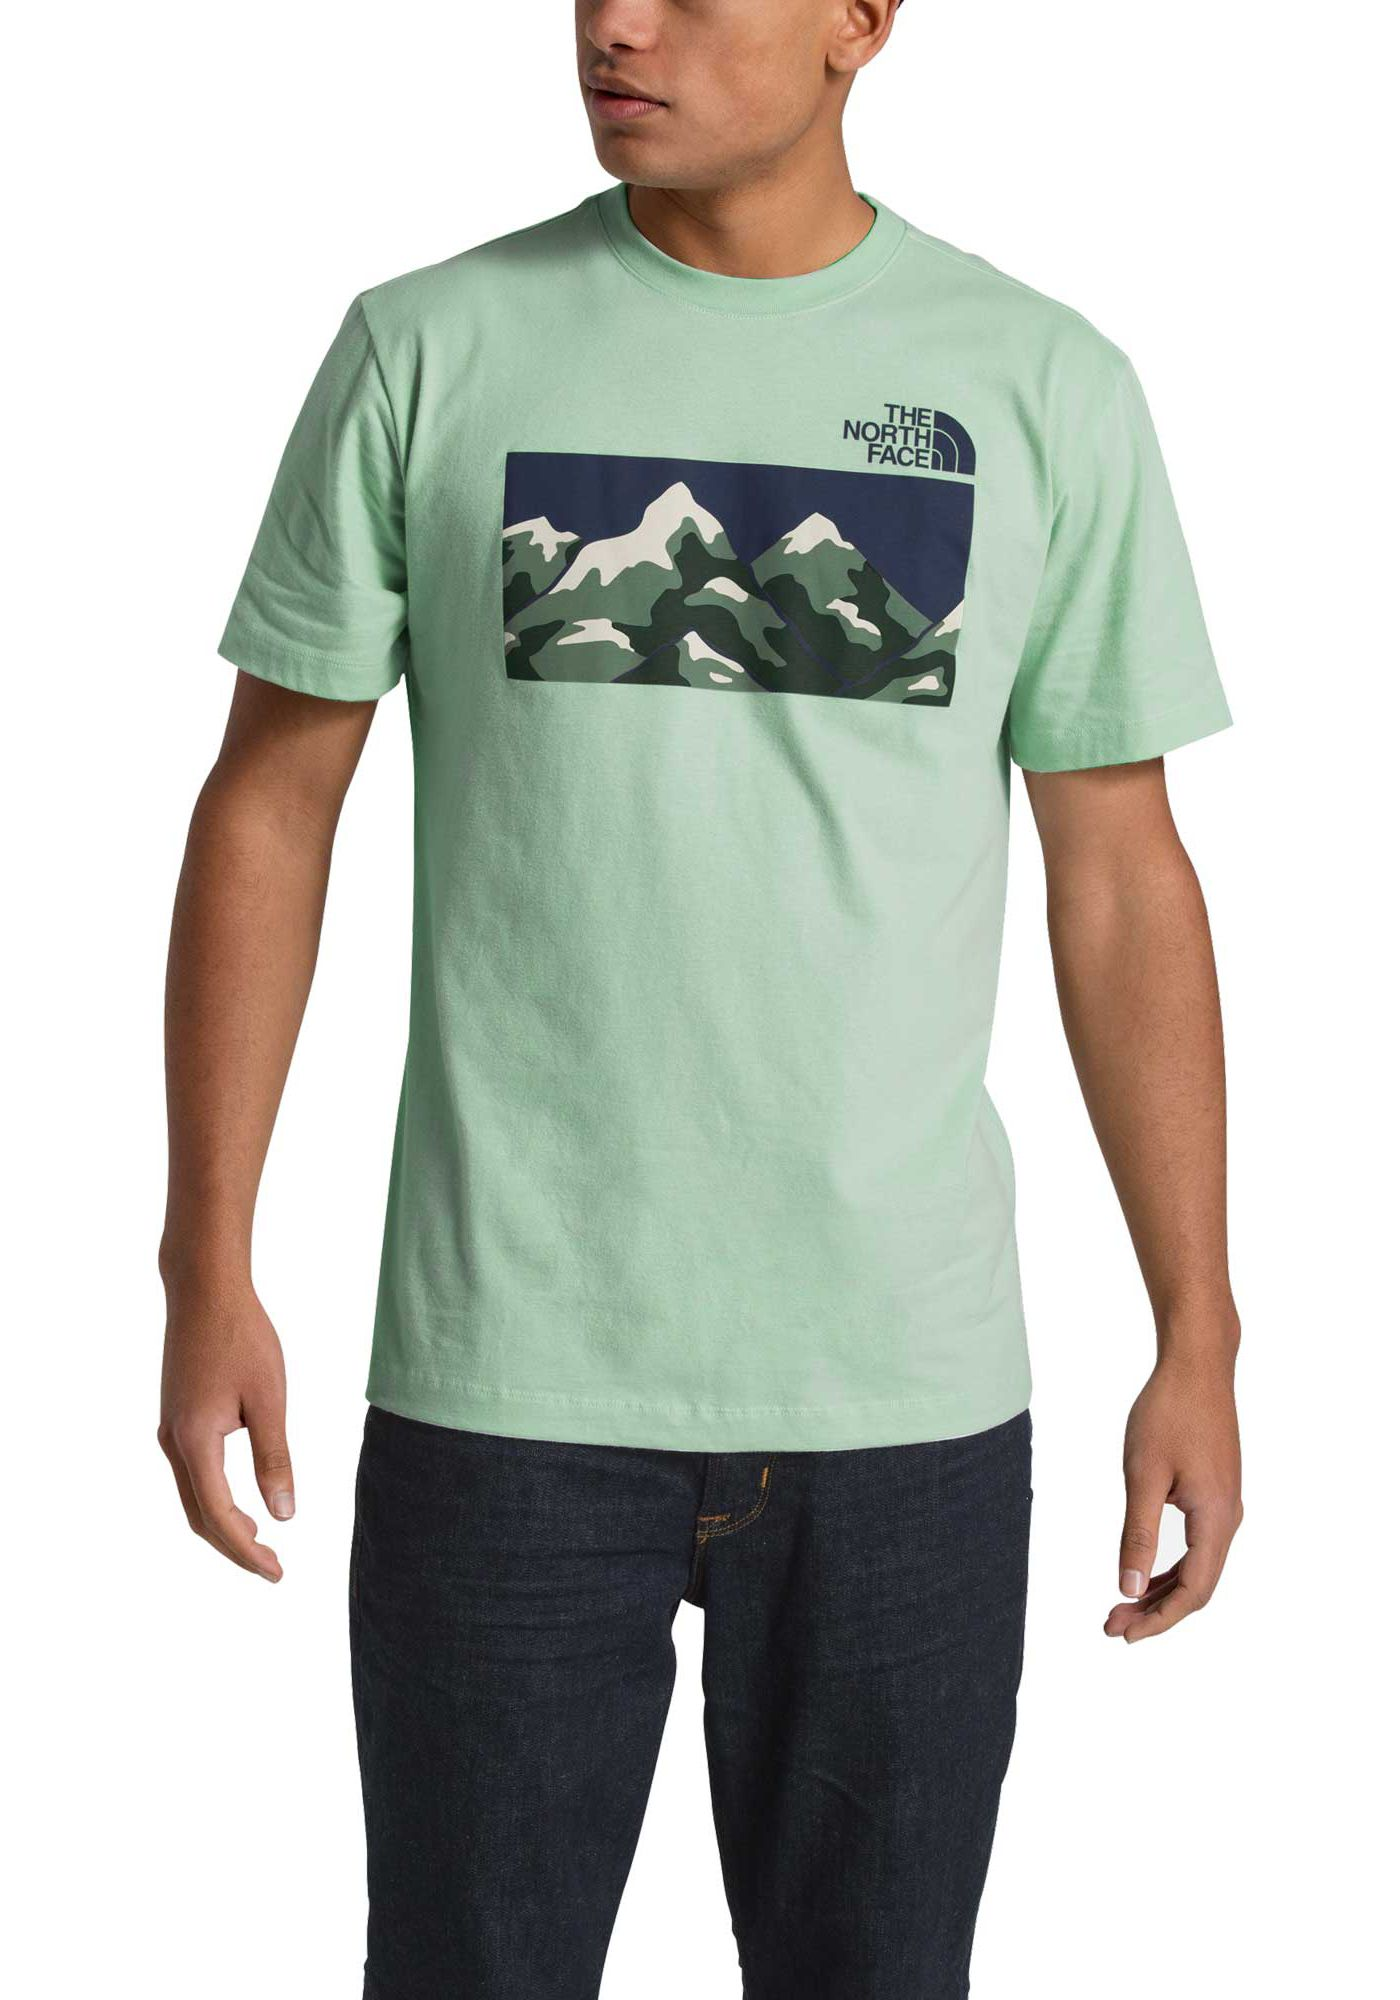 The North Face Men's Short Sleeve From The Beginning T-Shirt